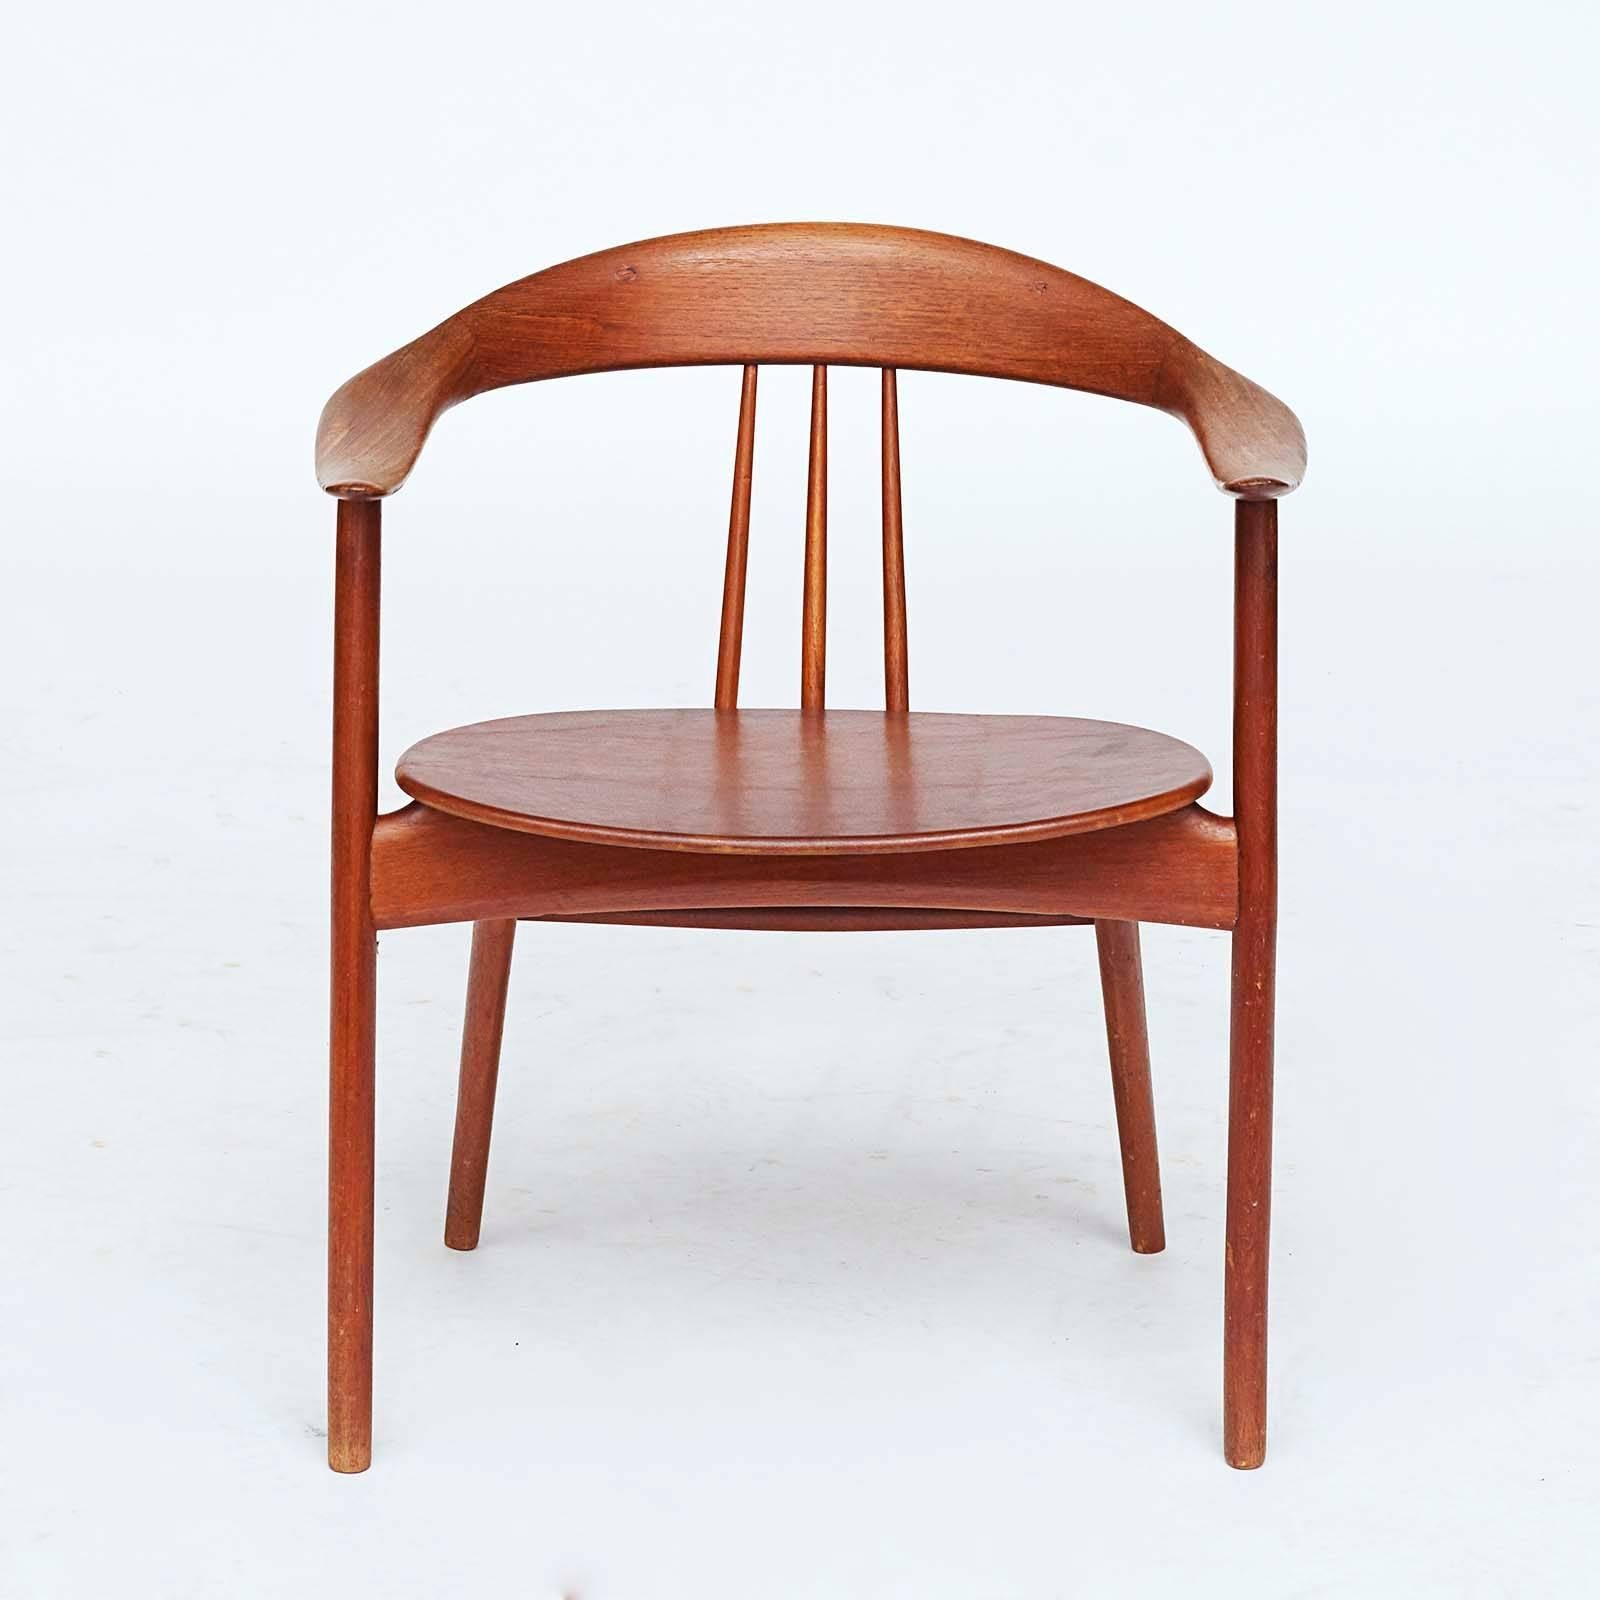 Danish Modern Armchair By Arne Hovmand Olsen Armchair, Model 308, Solid  Teakwood With Leather